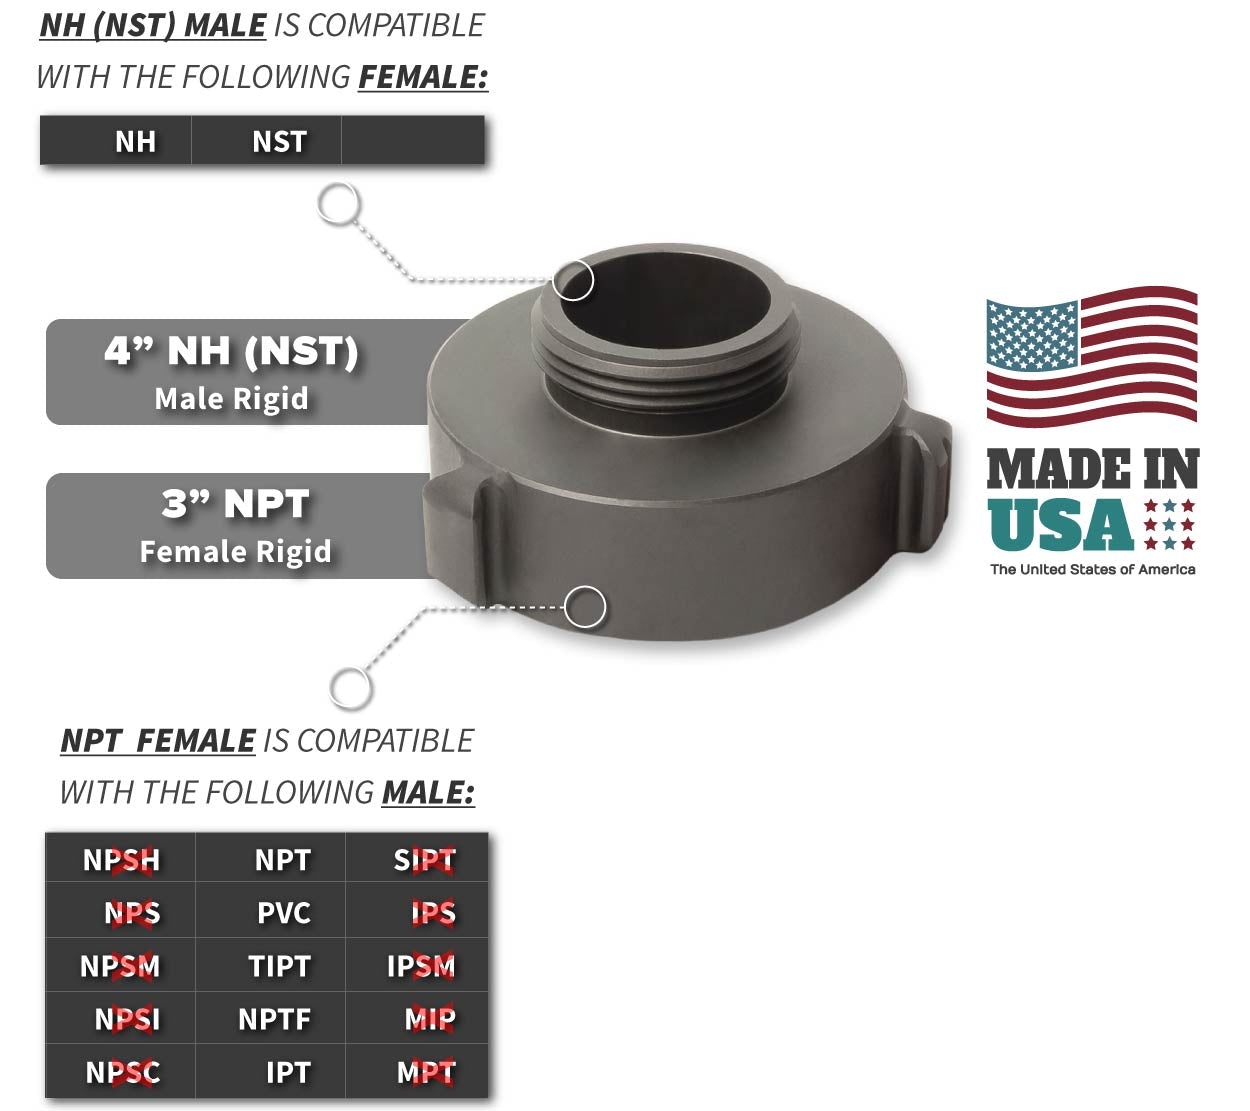 3 Inch NPT Female x 4 Inch NH-NST Male Compatibility Thread Chart